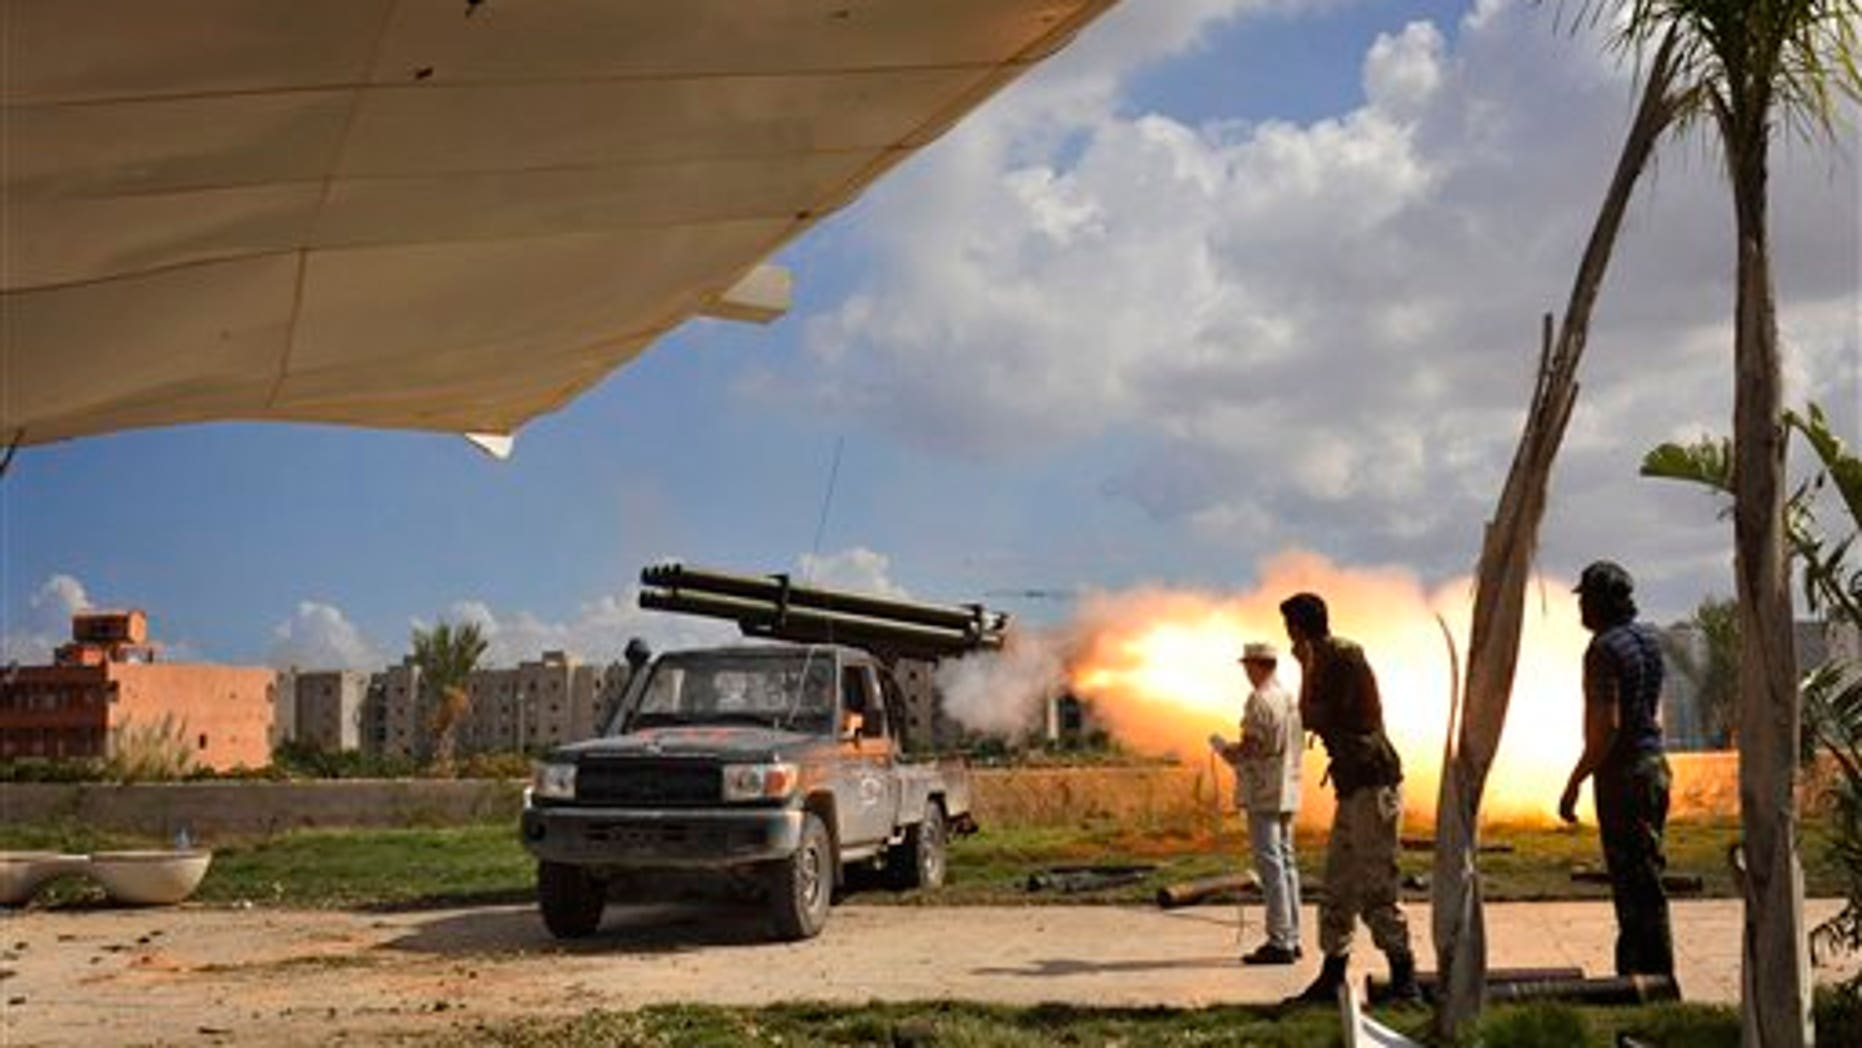 October 14: Libyan revolutionary fighters launch a missile towards pro-Gadhafi forces in downtown Sirte, Libya.